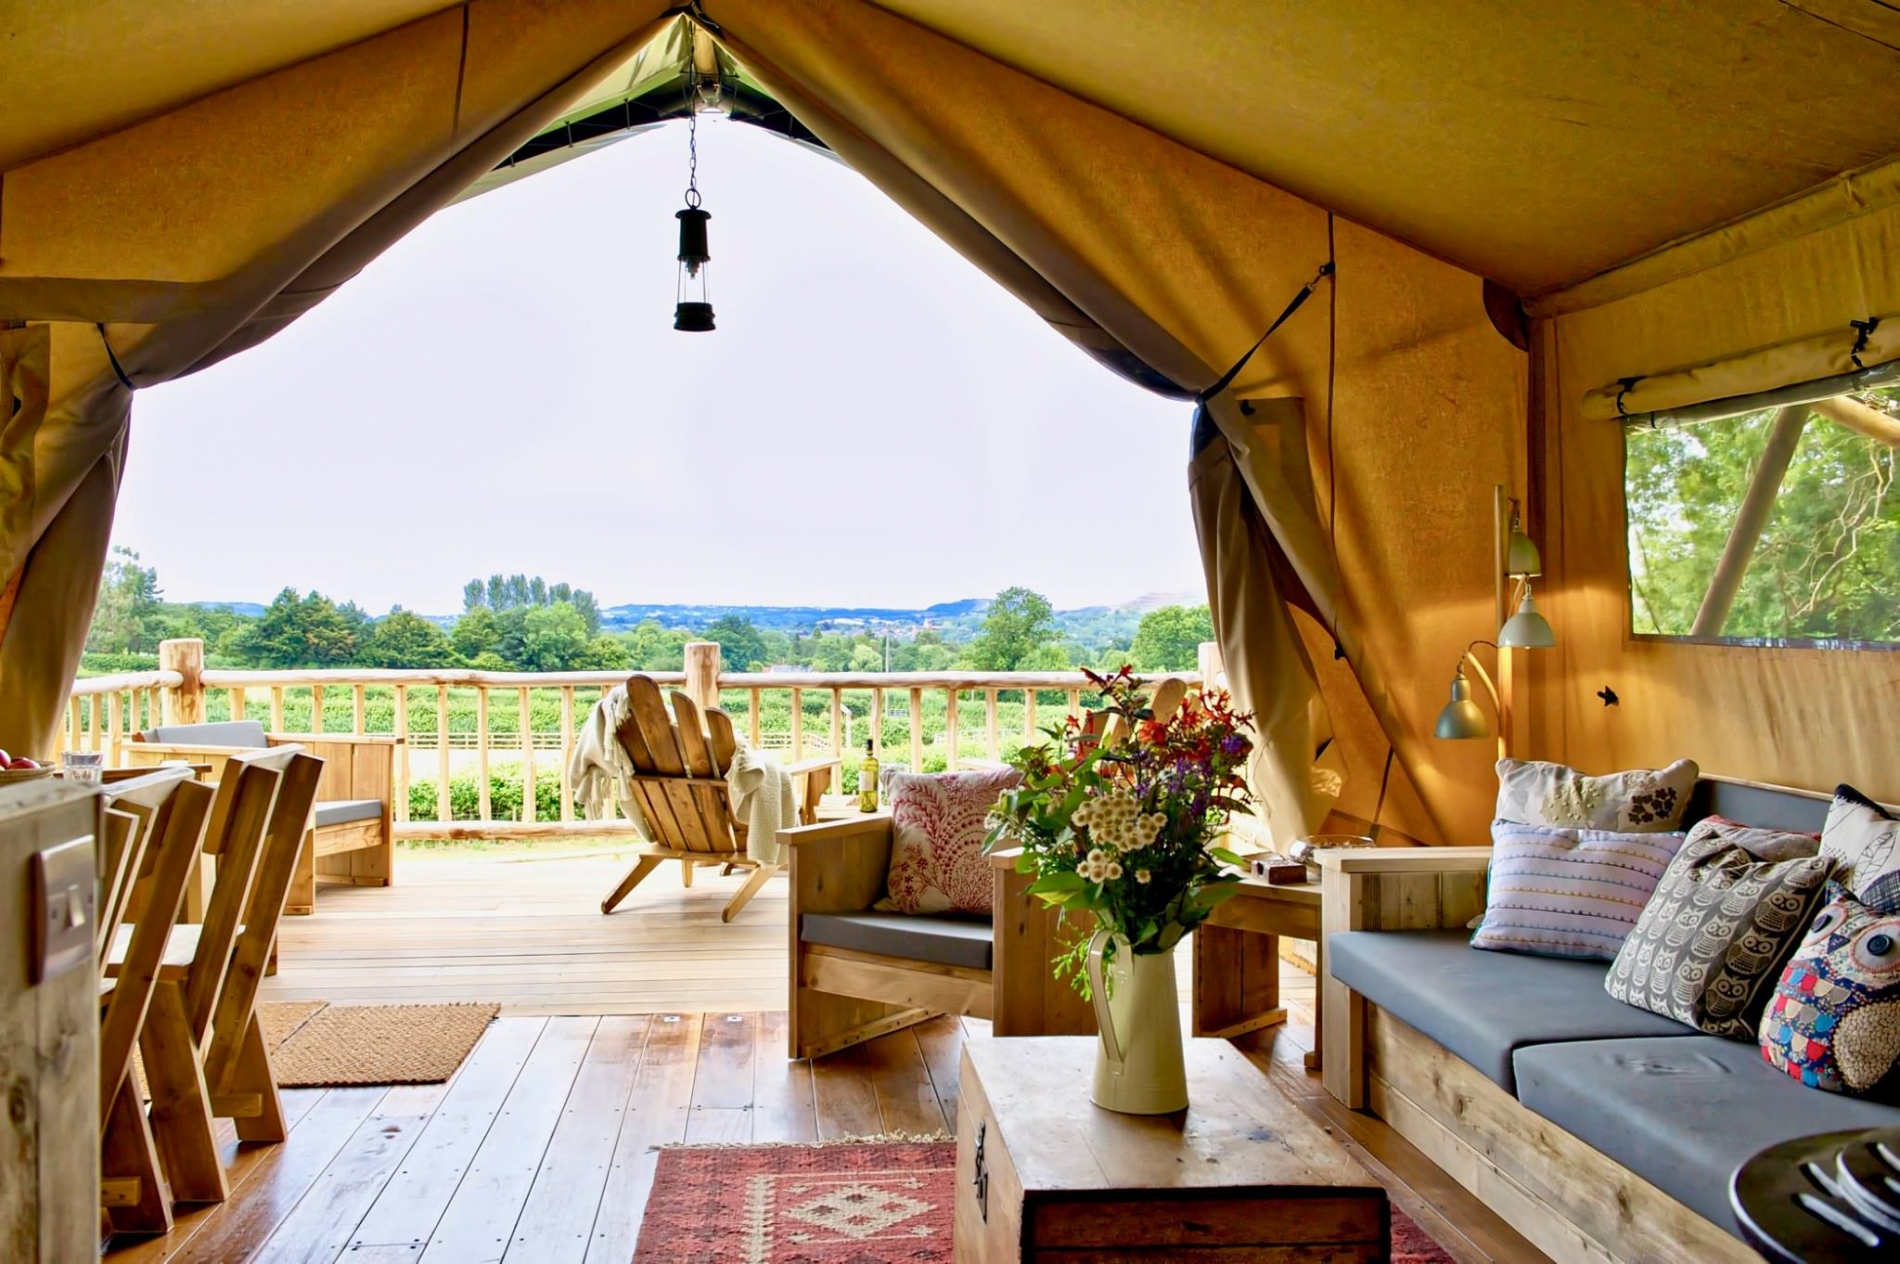 Dorset Glamping special Offer